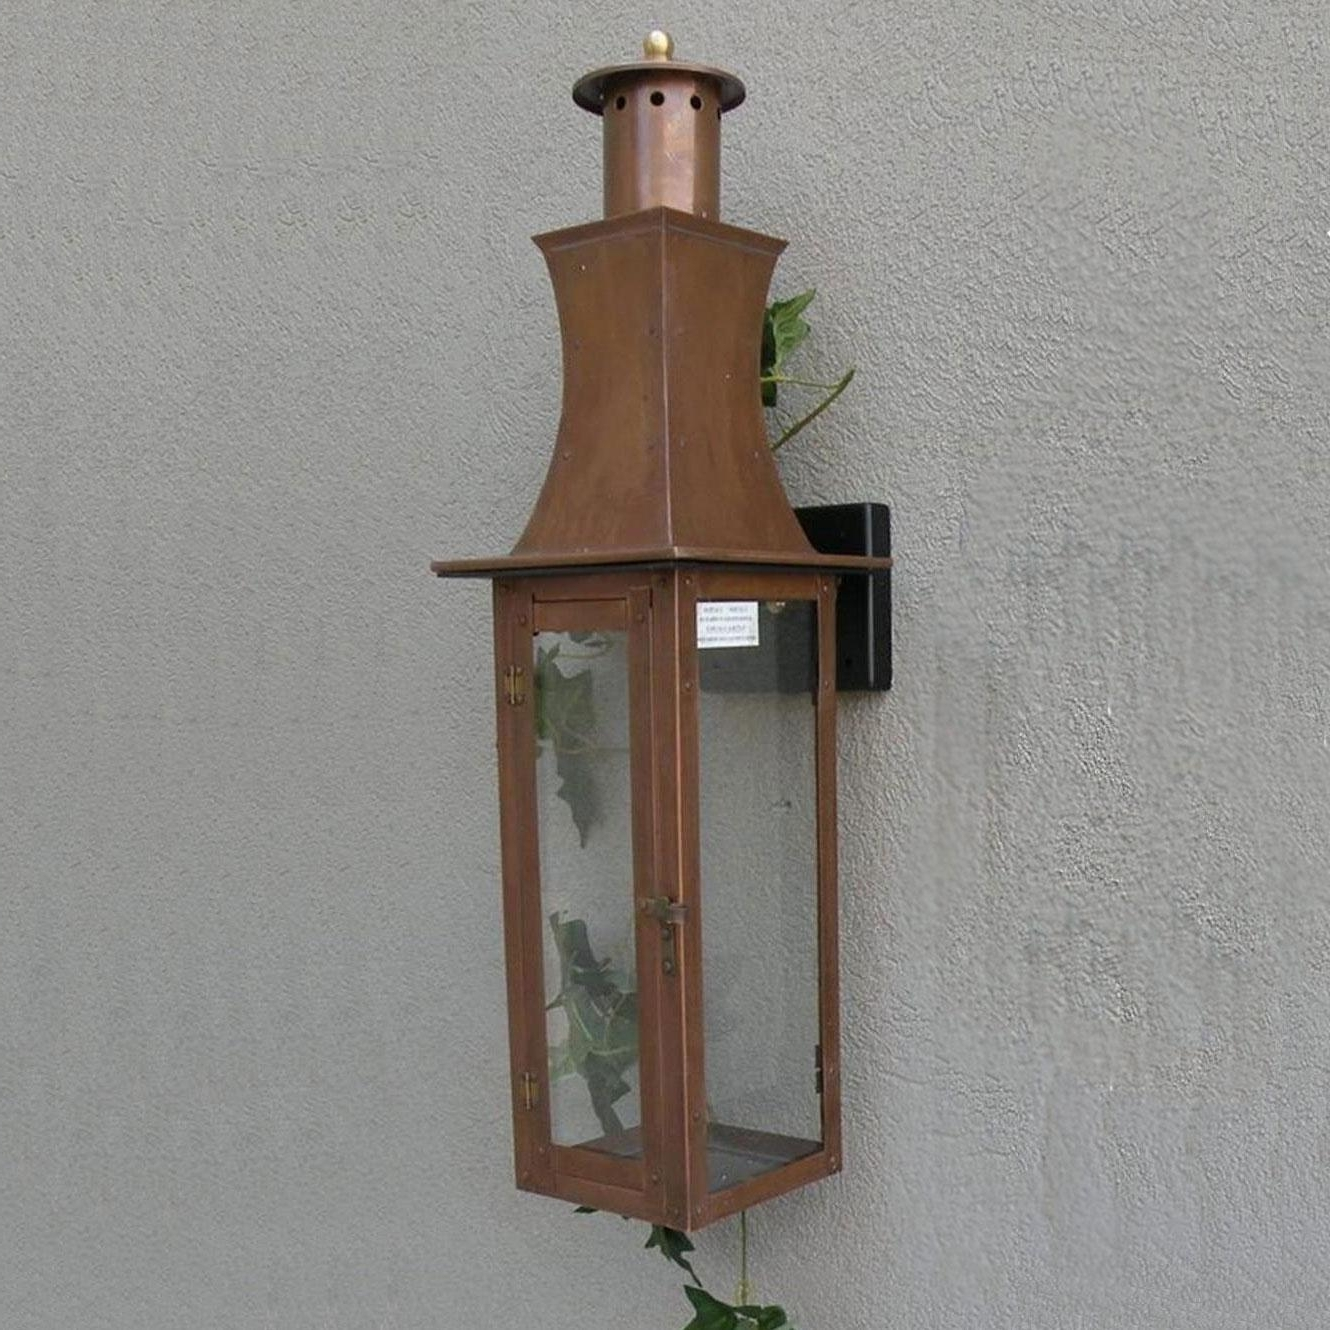 Fashionable Japanese Outdoor Wall Lighting Inside Lovely Antique Hanging On The Wall Outdoor Lighting Fixture Using (View 5 of 20)